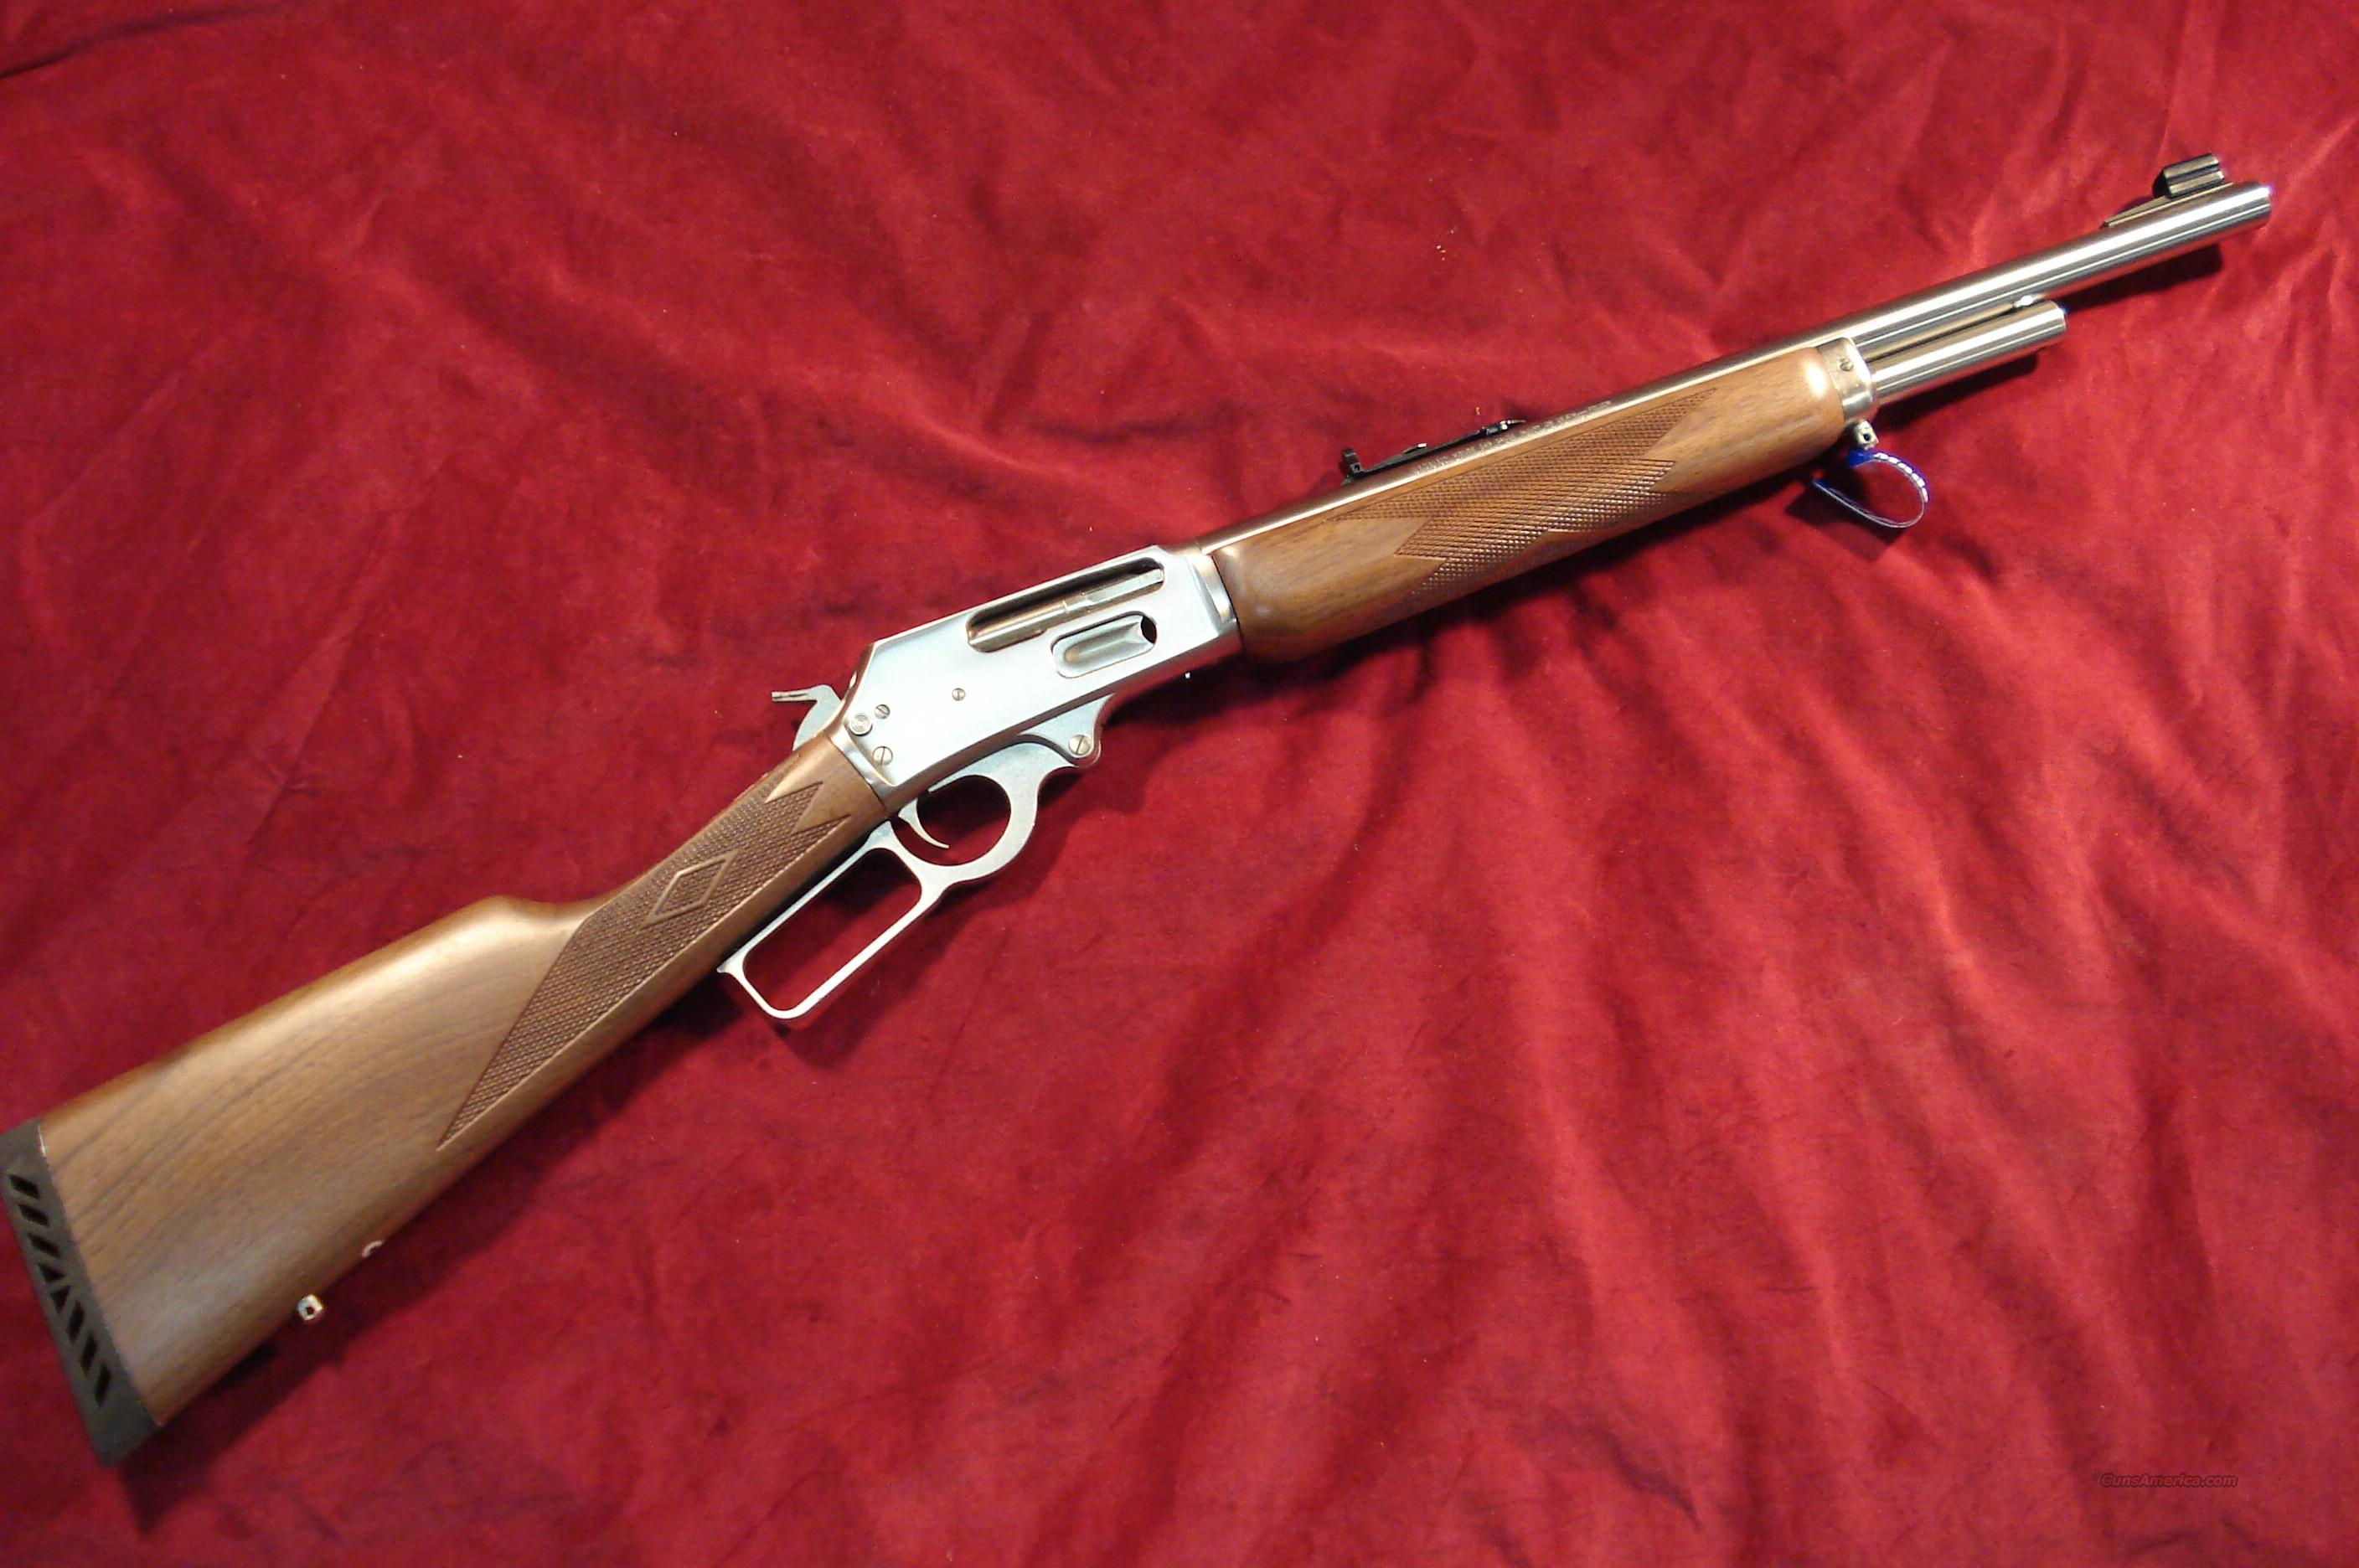 MARLIN STAINLESS GUIDE GUN 45-70 GOV'T NEW  (1895GS)  Guns > Rifles > Marlin Rifles > Modern > Lever Action